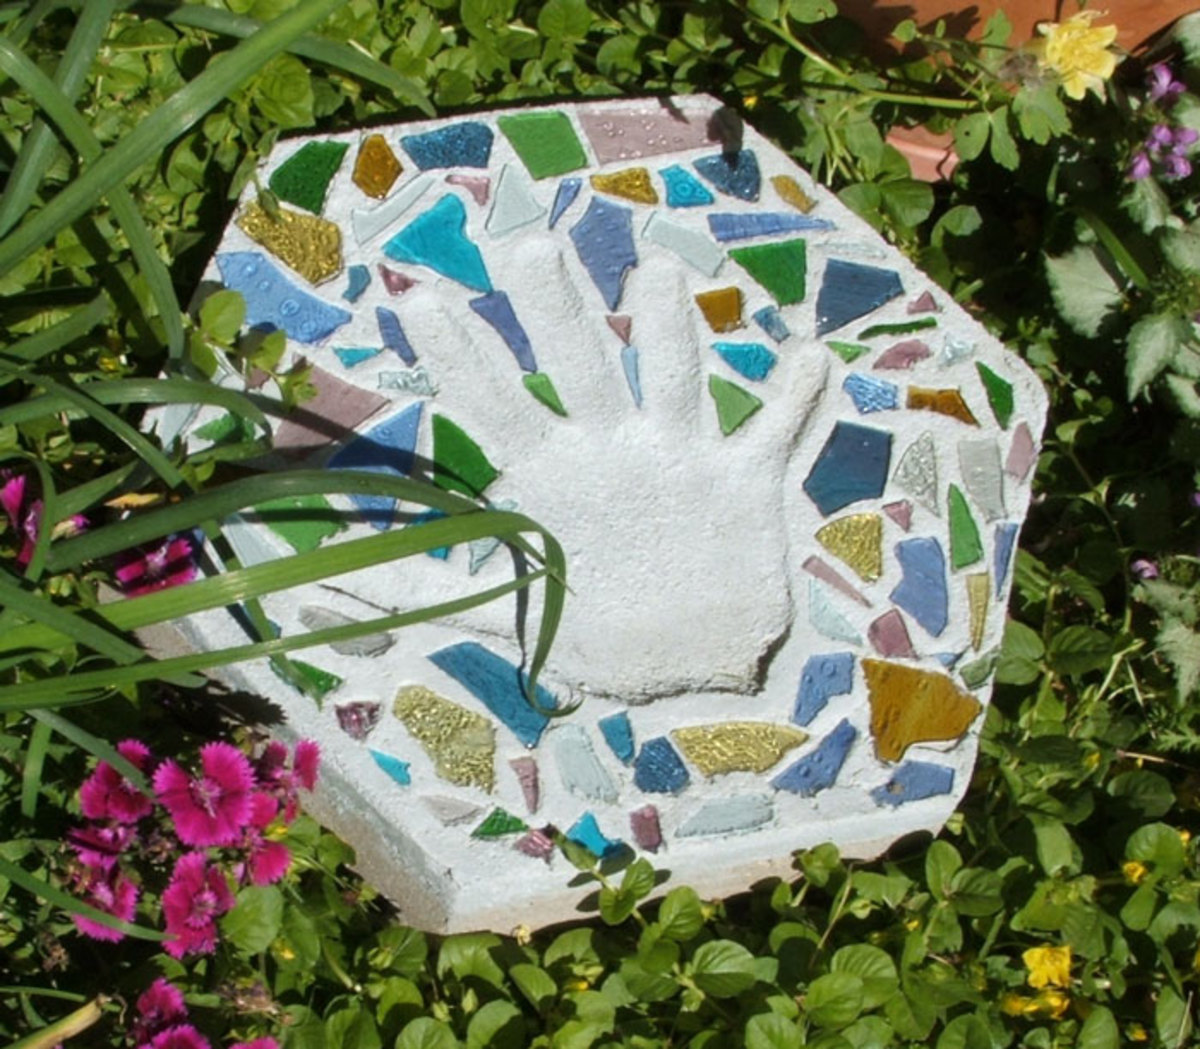 How to Make Personalized Stepping Stones to Upgrade Your Garden